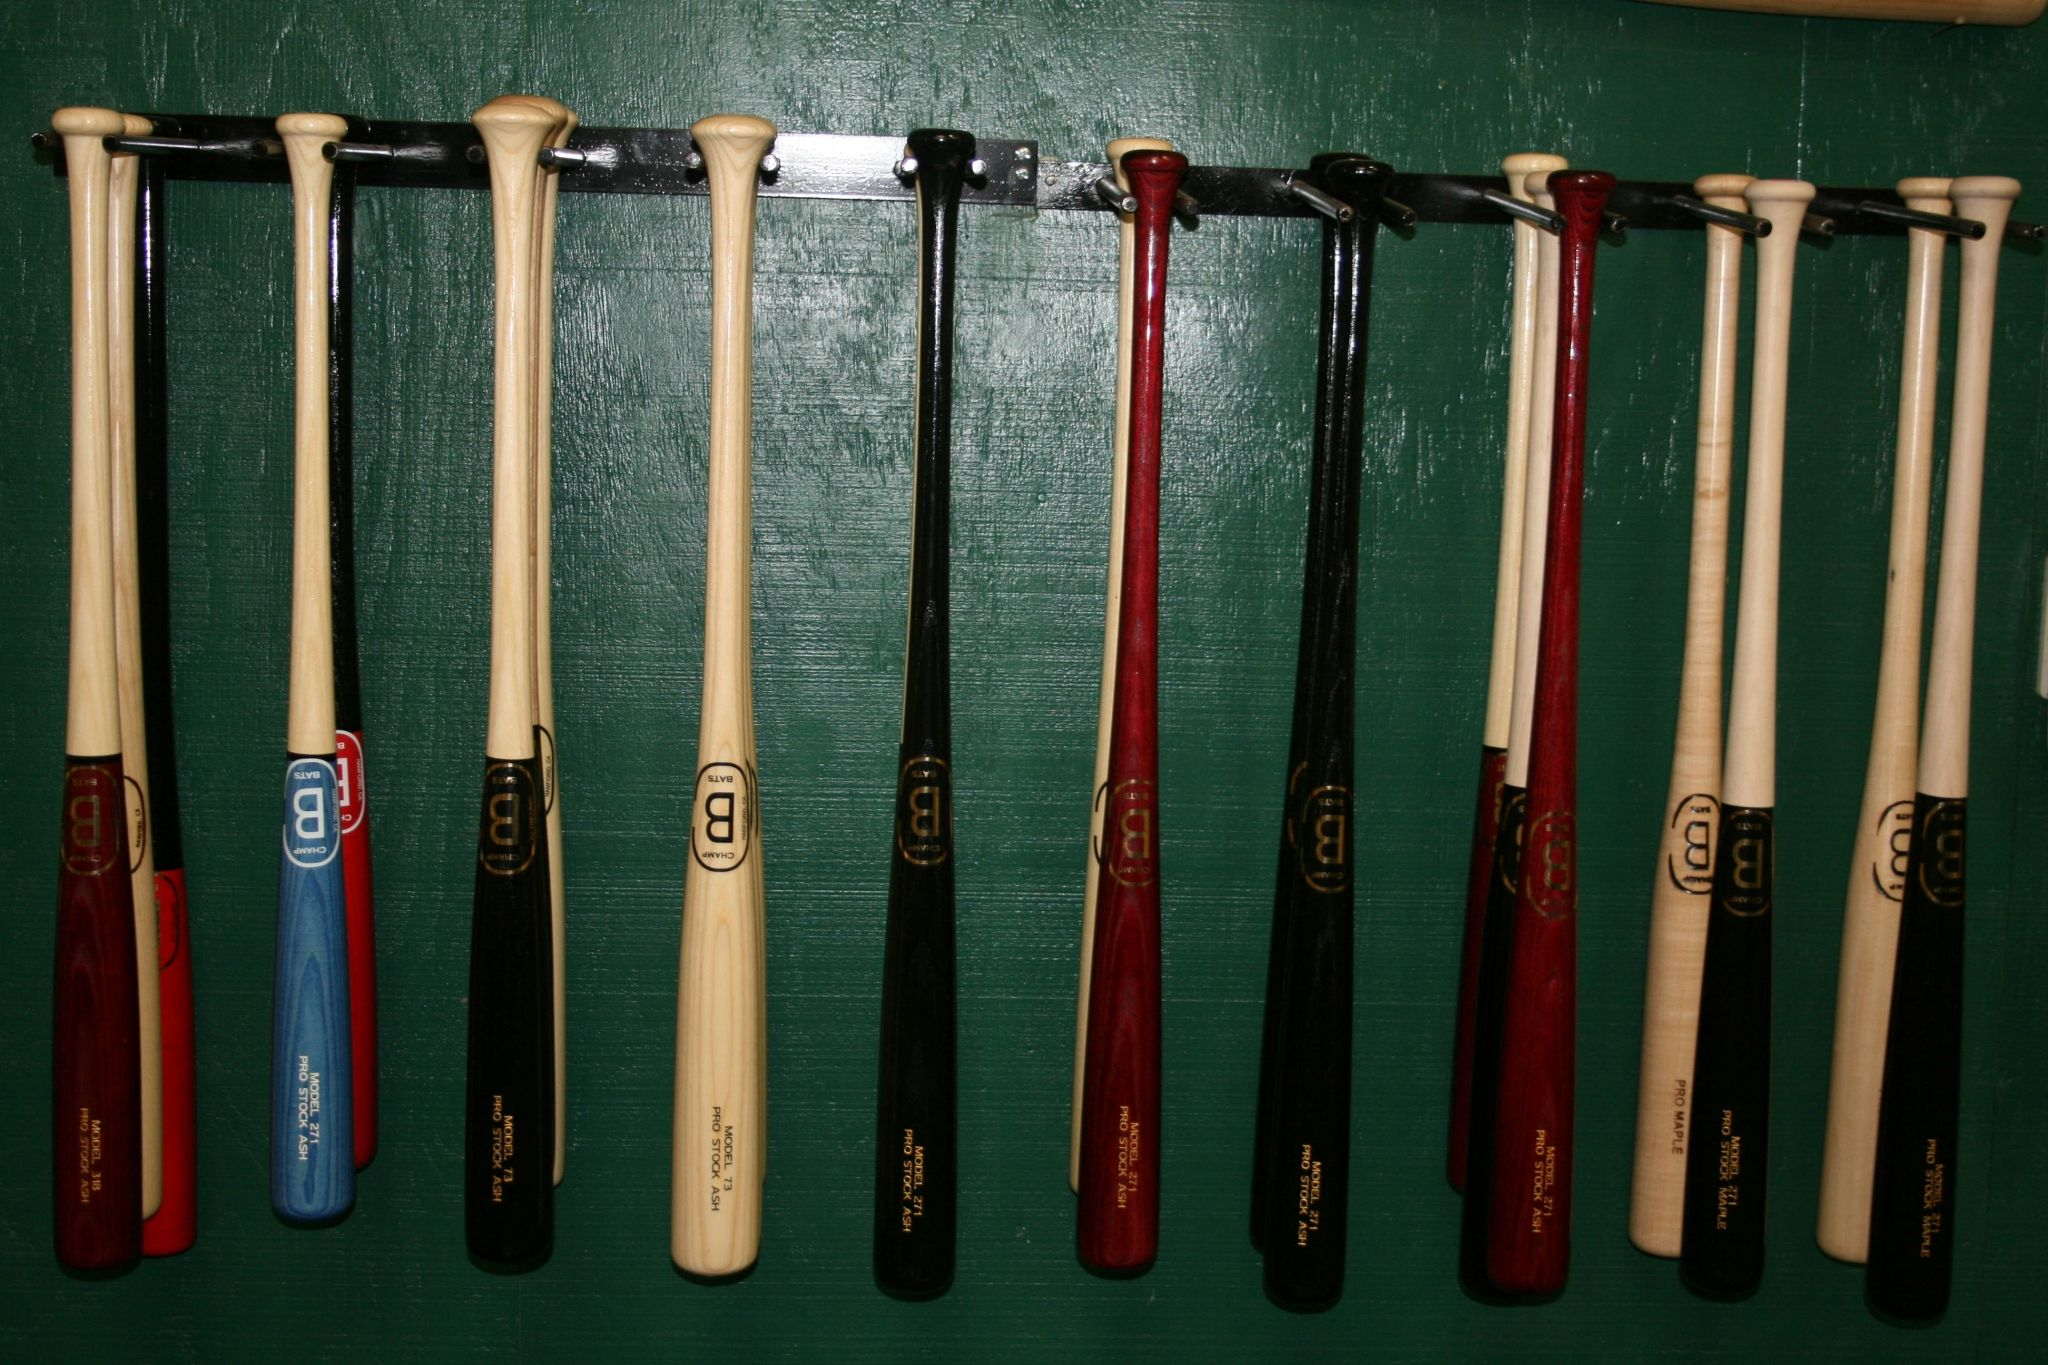 2048x1365 Baseball Computer Desktop Backgrounds Baseball Bat Wood Custom Wood Bats Baseball Bat